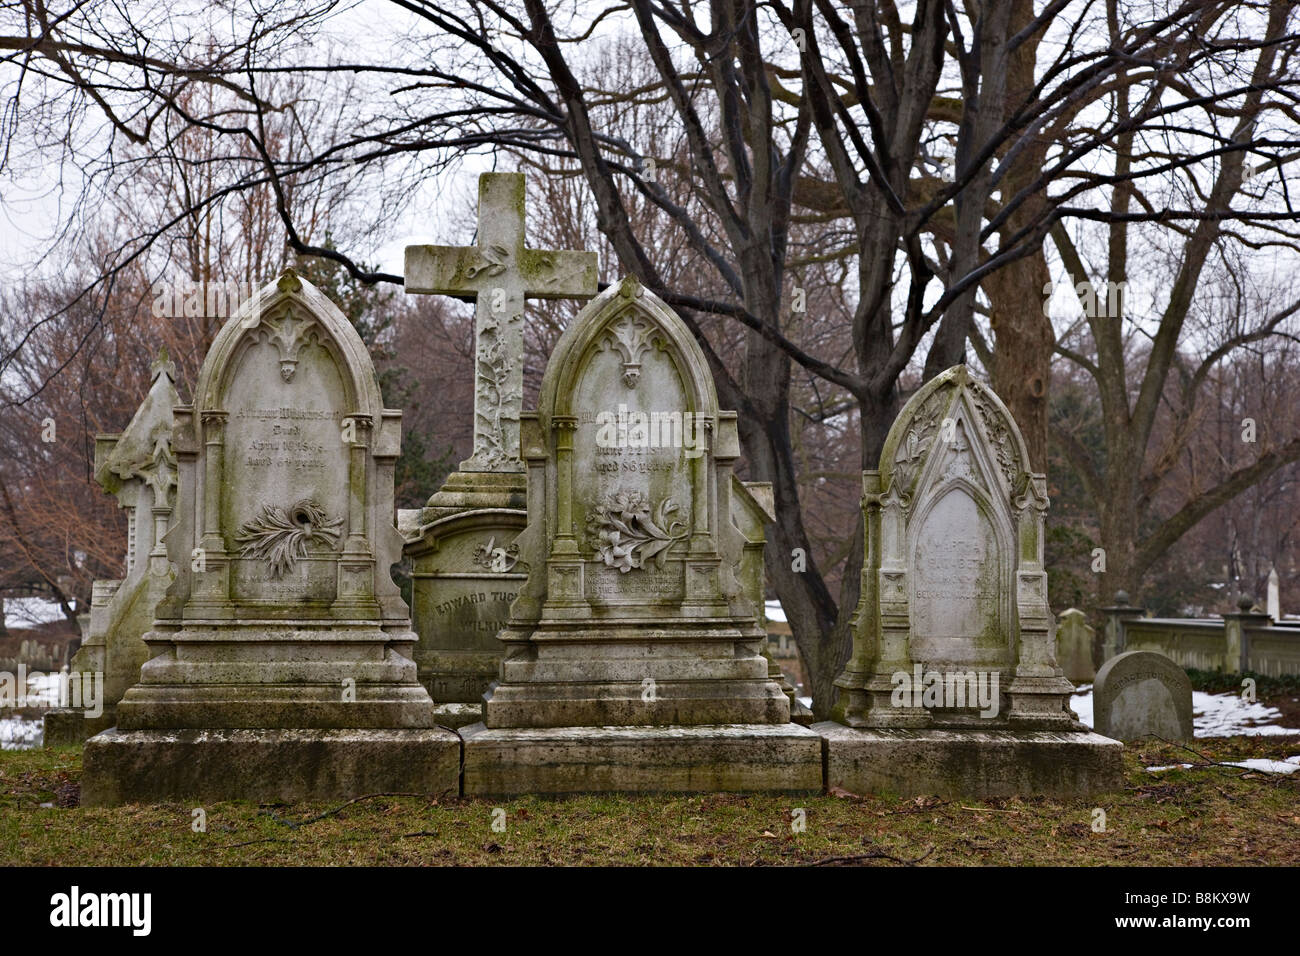 Graves at Mt. Auburn Cemetery, Cambridge, Massachusetts, USA - Stock Image